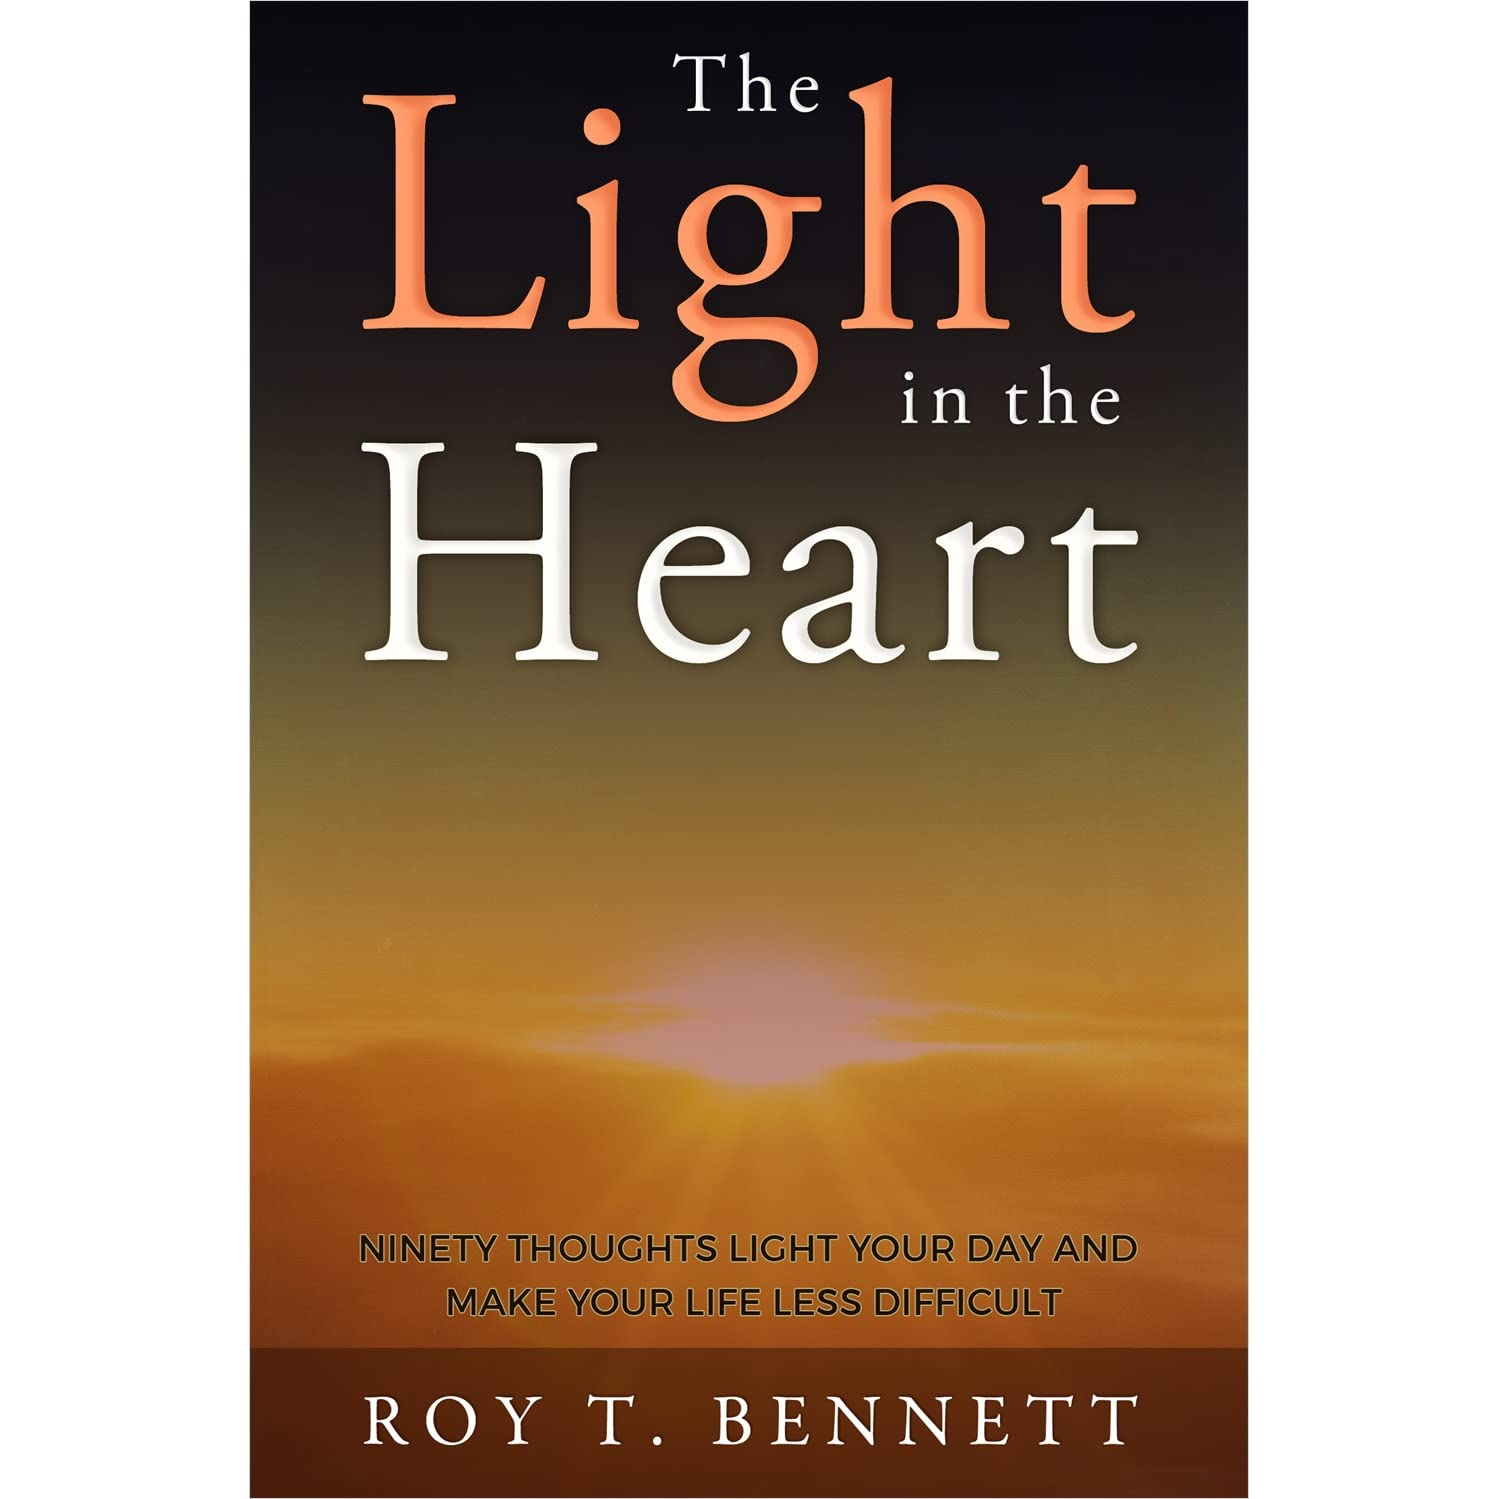 the light in the heart by roy t bennett